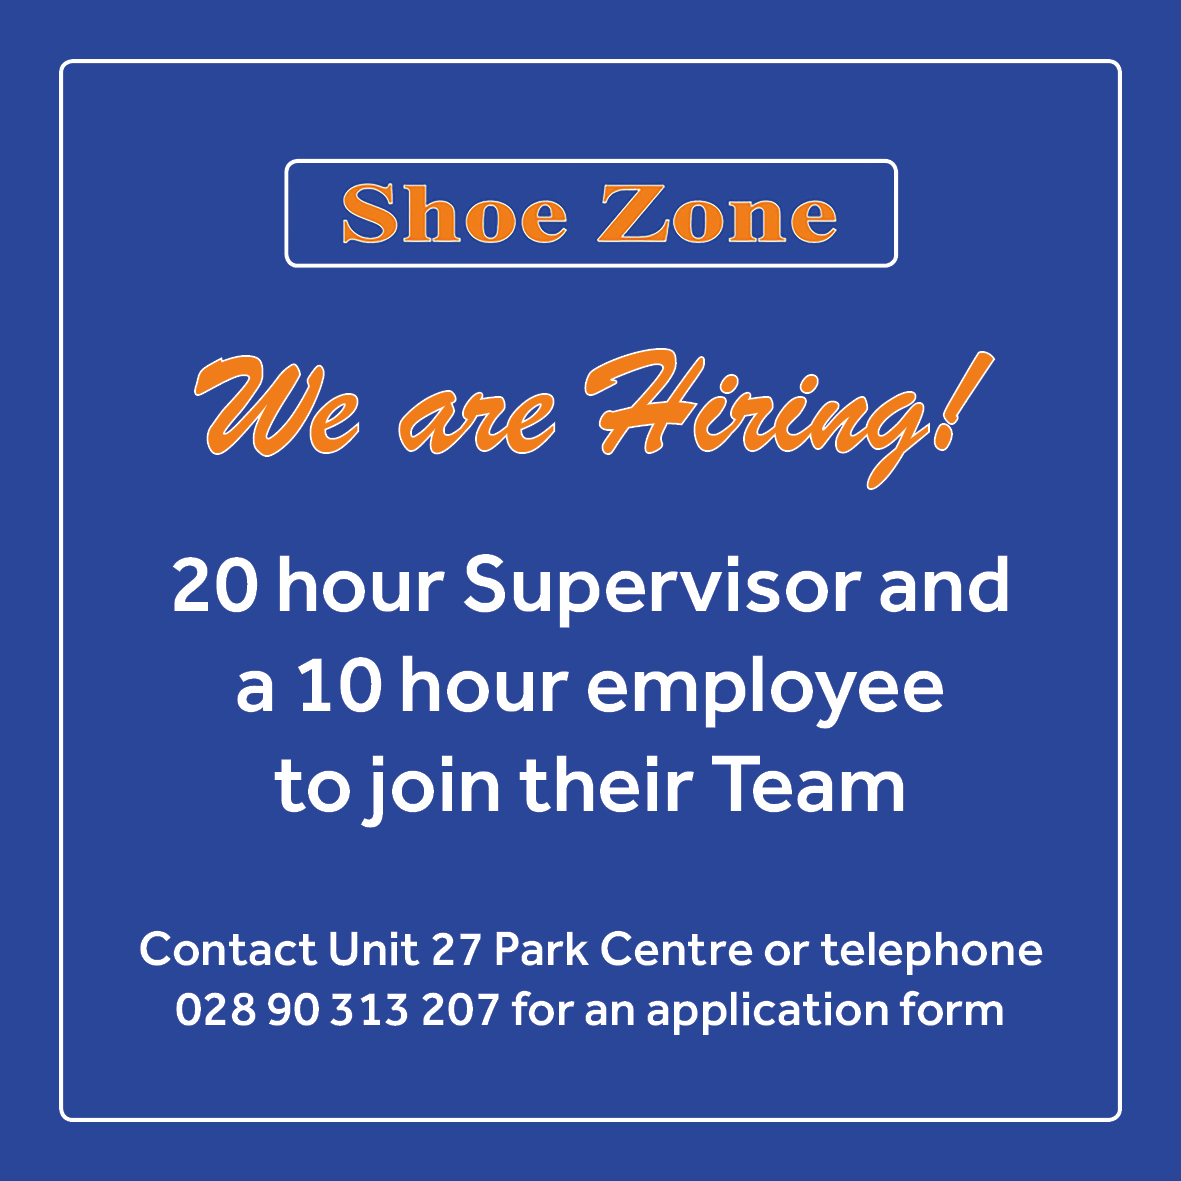 Shoezone Job Advert